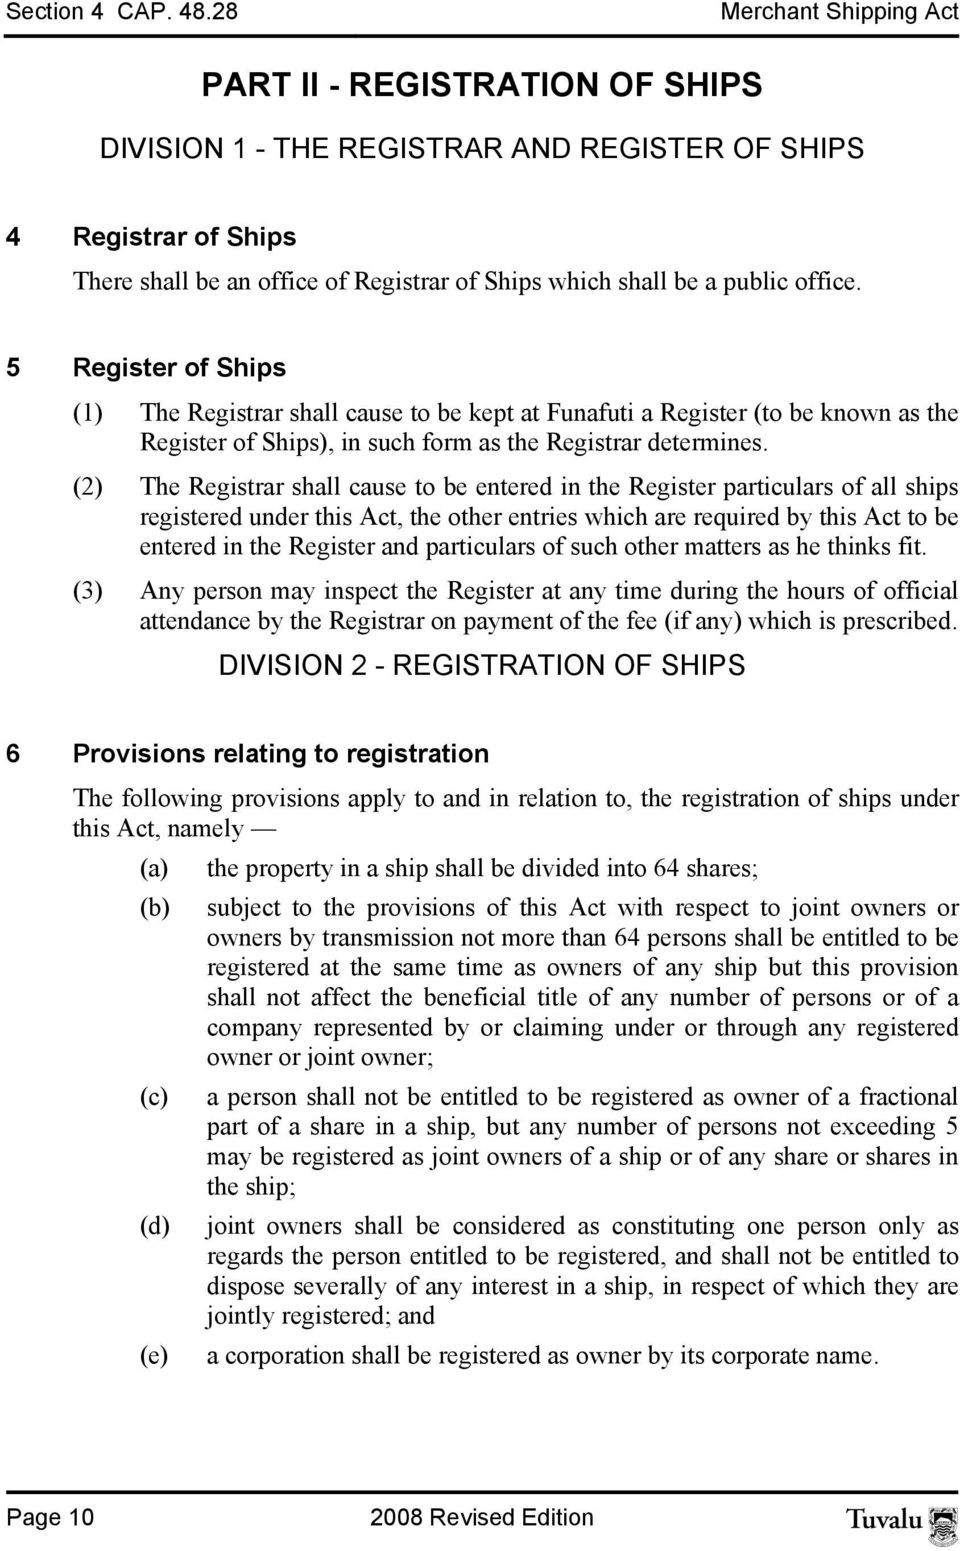 office. 5 Register of Ships (1) The Registrar shall cause to be kept at Funafuti a Register (to be known as the Register of Ships), in such form as the Registrar determines.